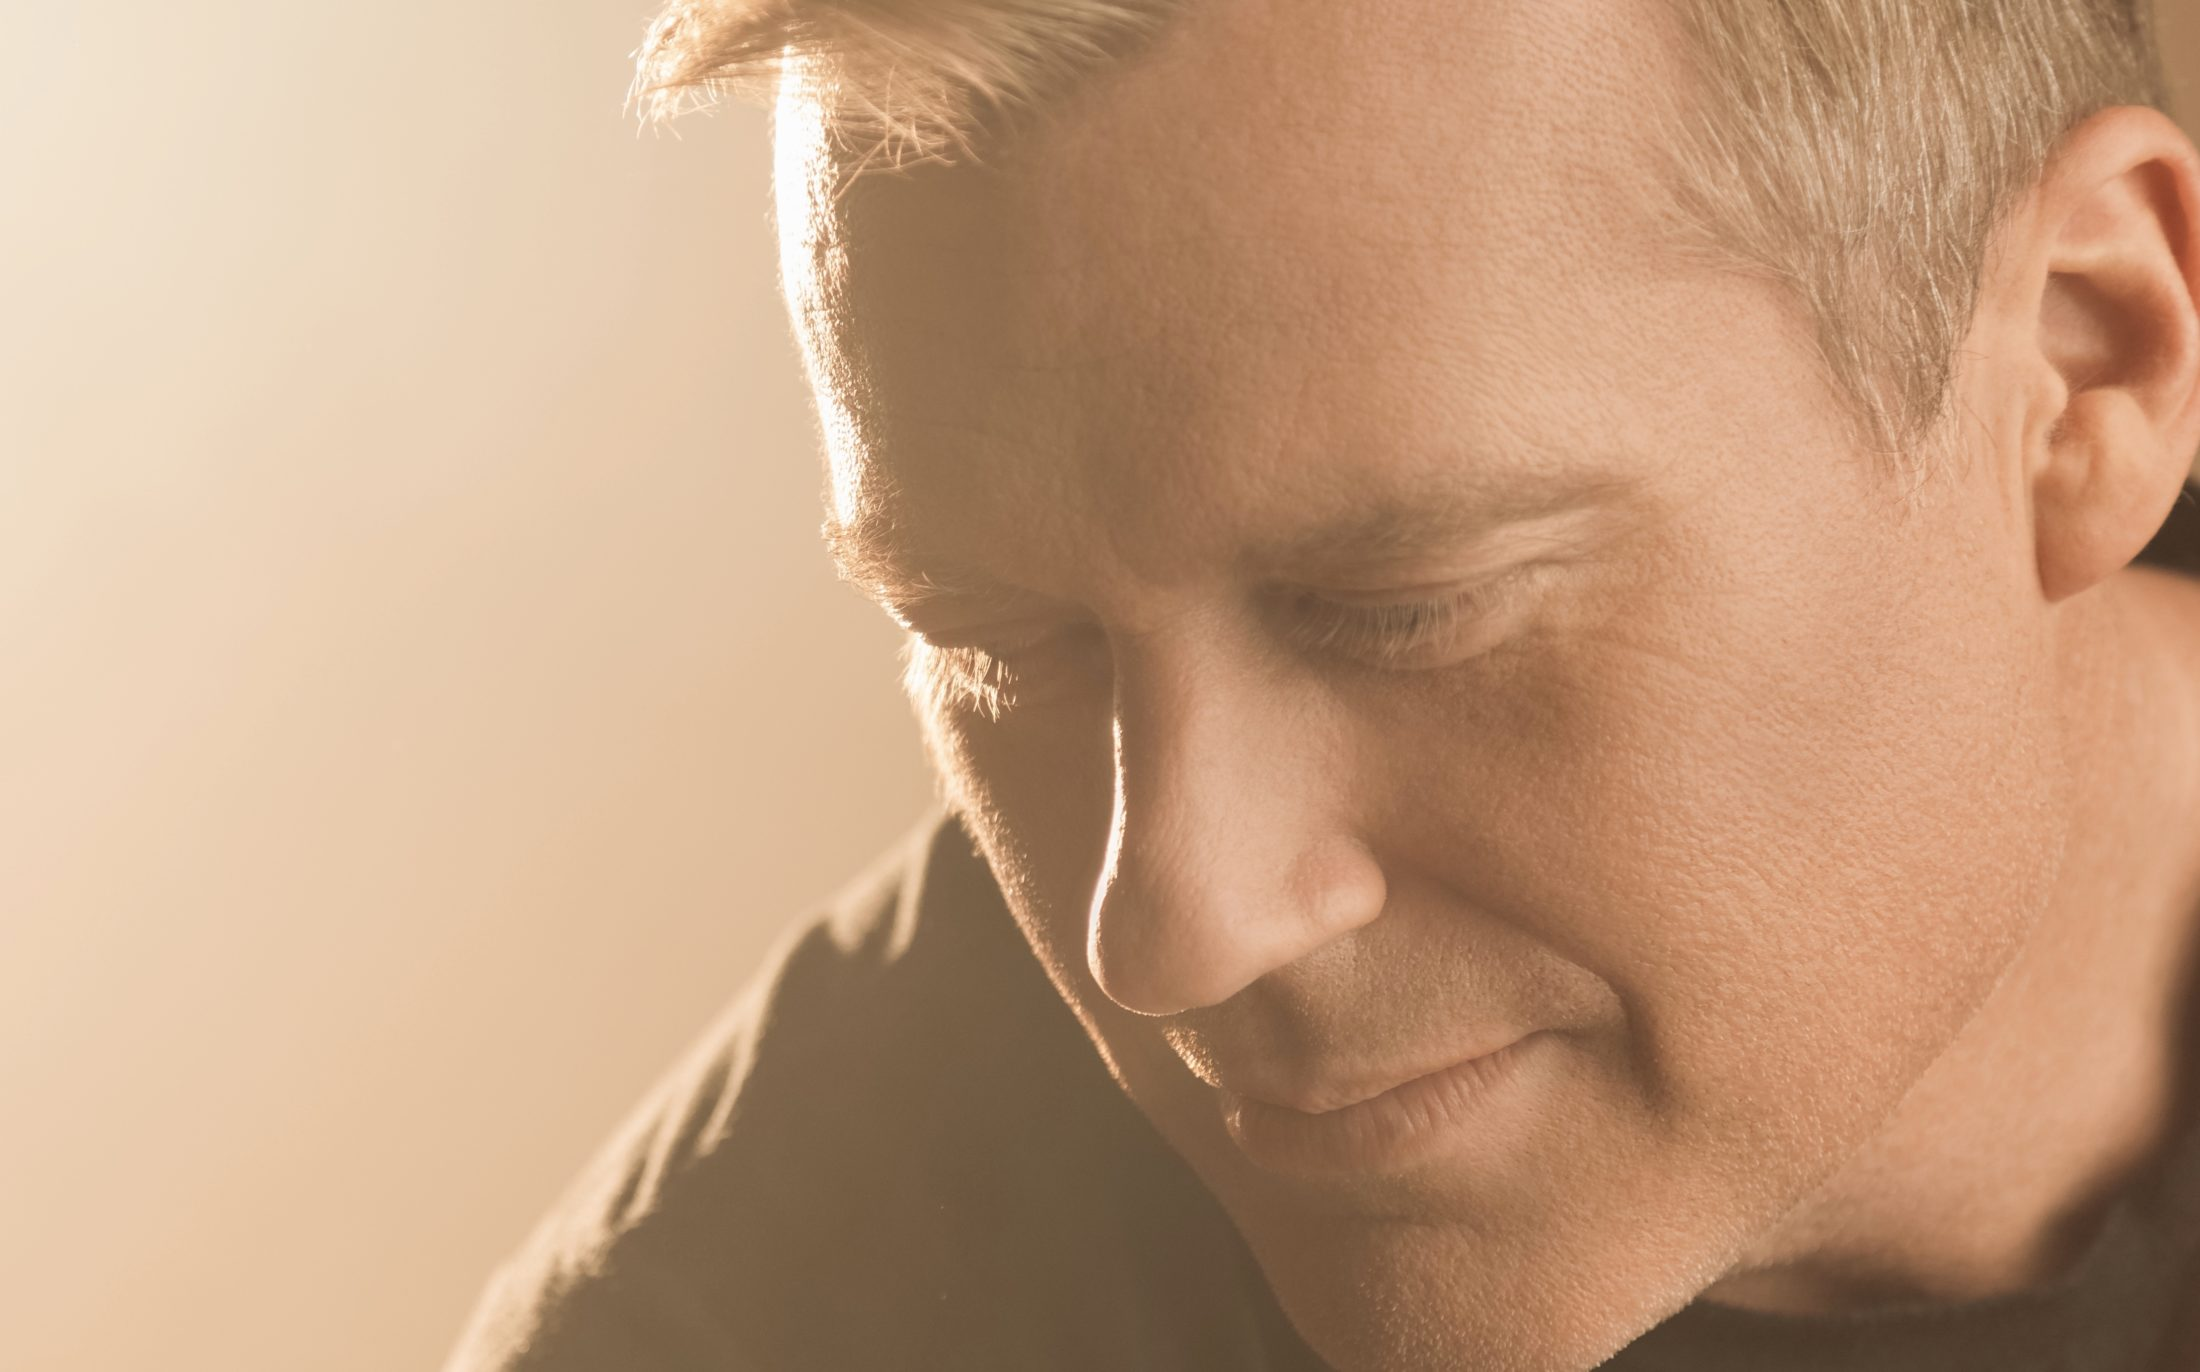 CHARLES BILLINGSLEY'S 'I WAS MADE FOR THIS' SHOWCASES CLASSIC POP HITS AND INSPIRING ORIGINALS